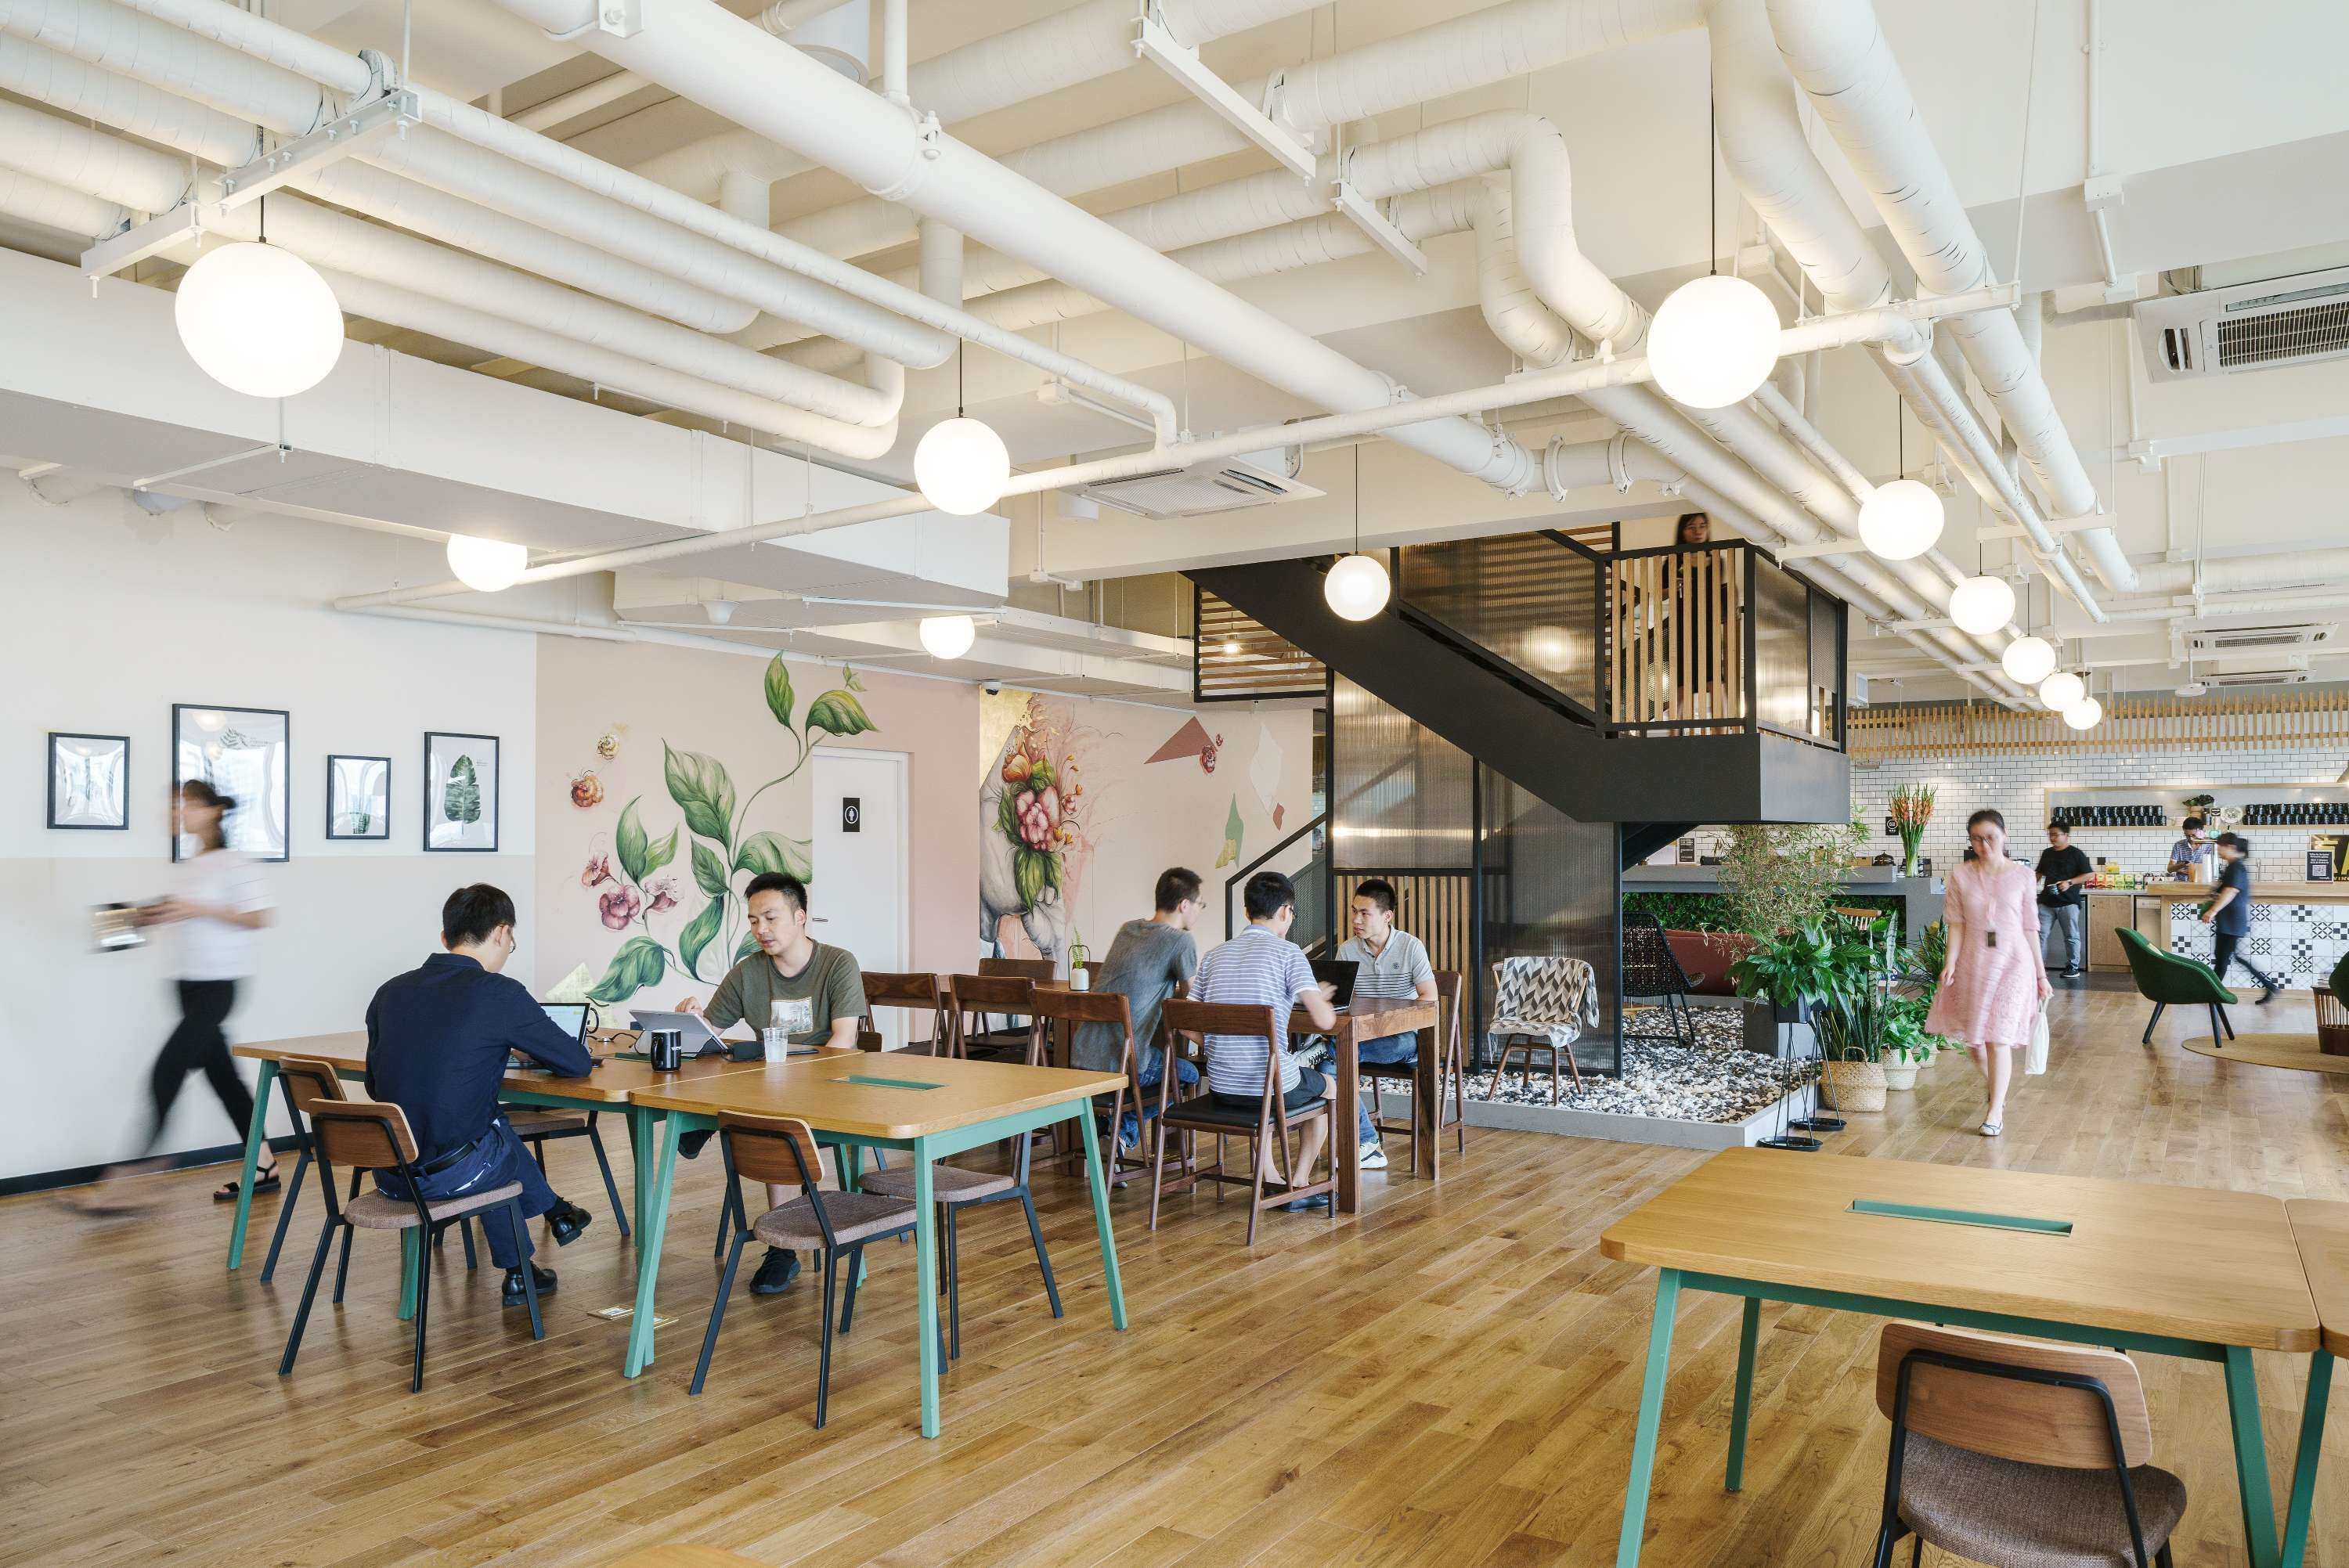 Wework Marylebone Available Now Through Findaservicedoffice Com Prices Starting From Private Office 1 080 Mo Dedi Flexible Work Space Home Private Office